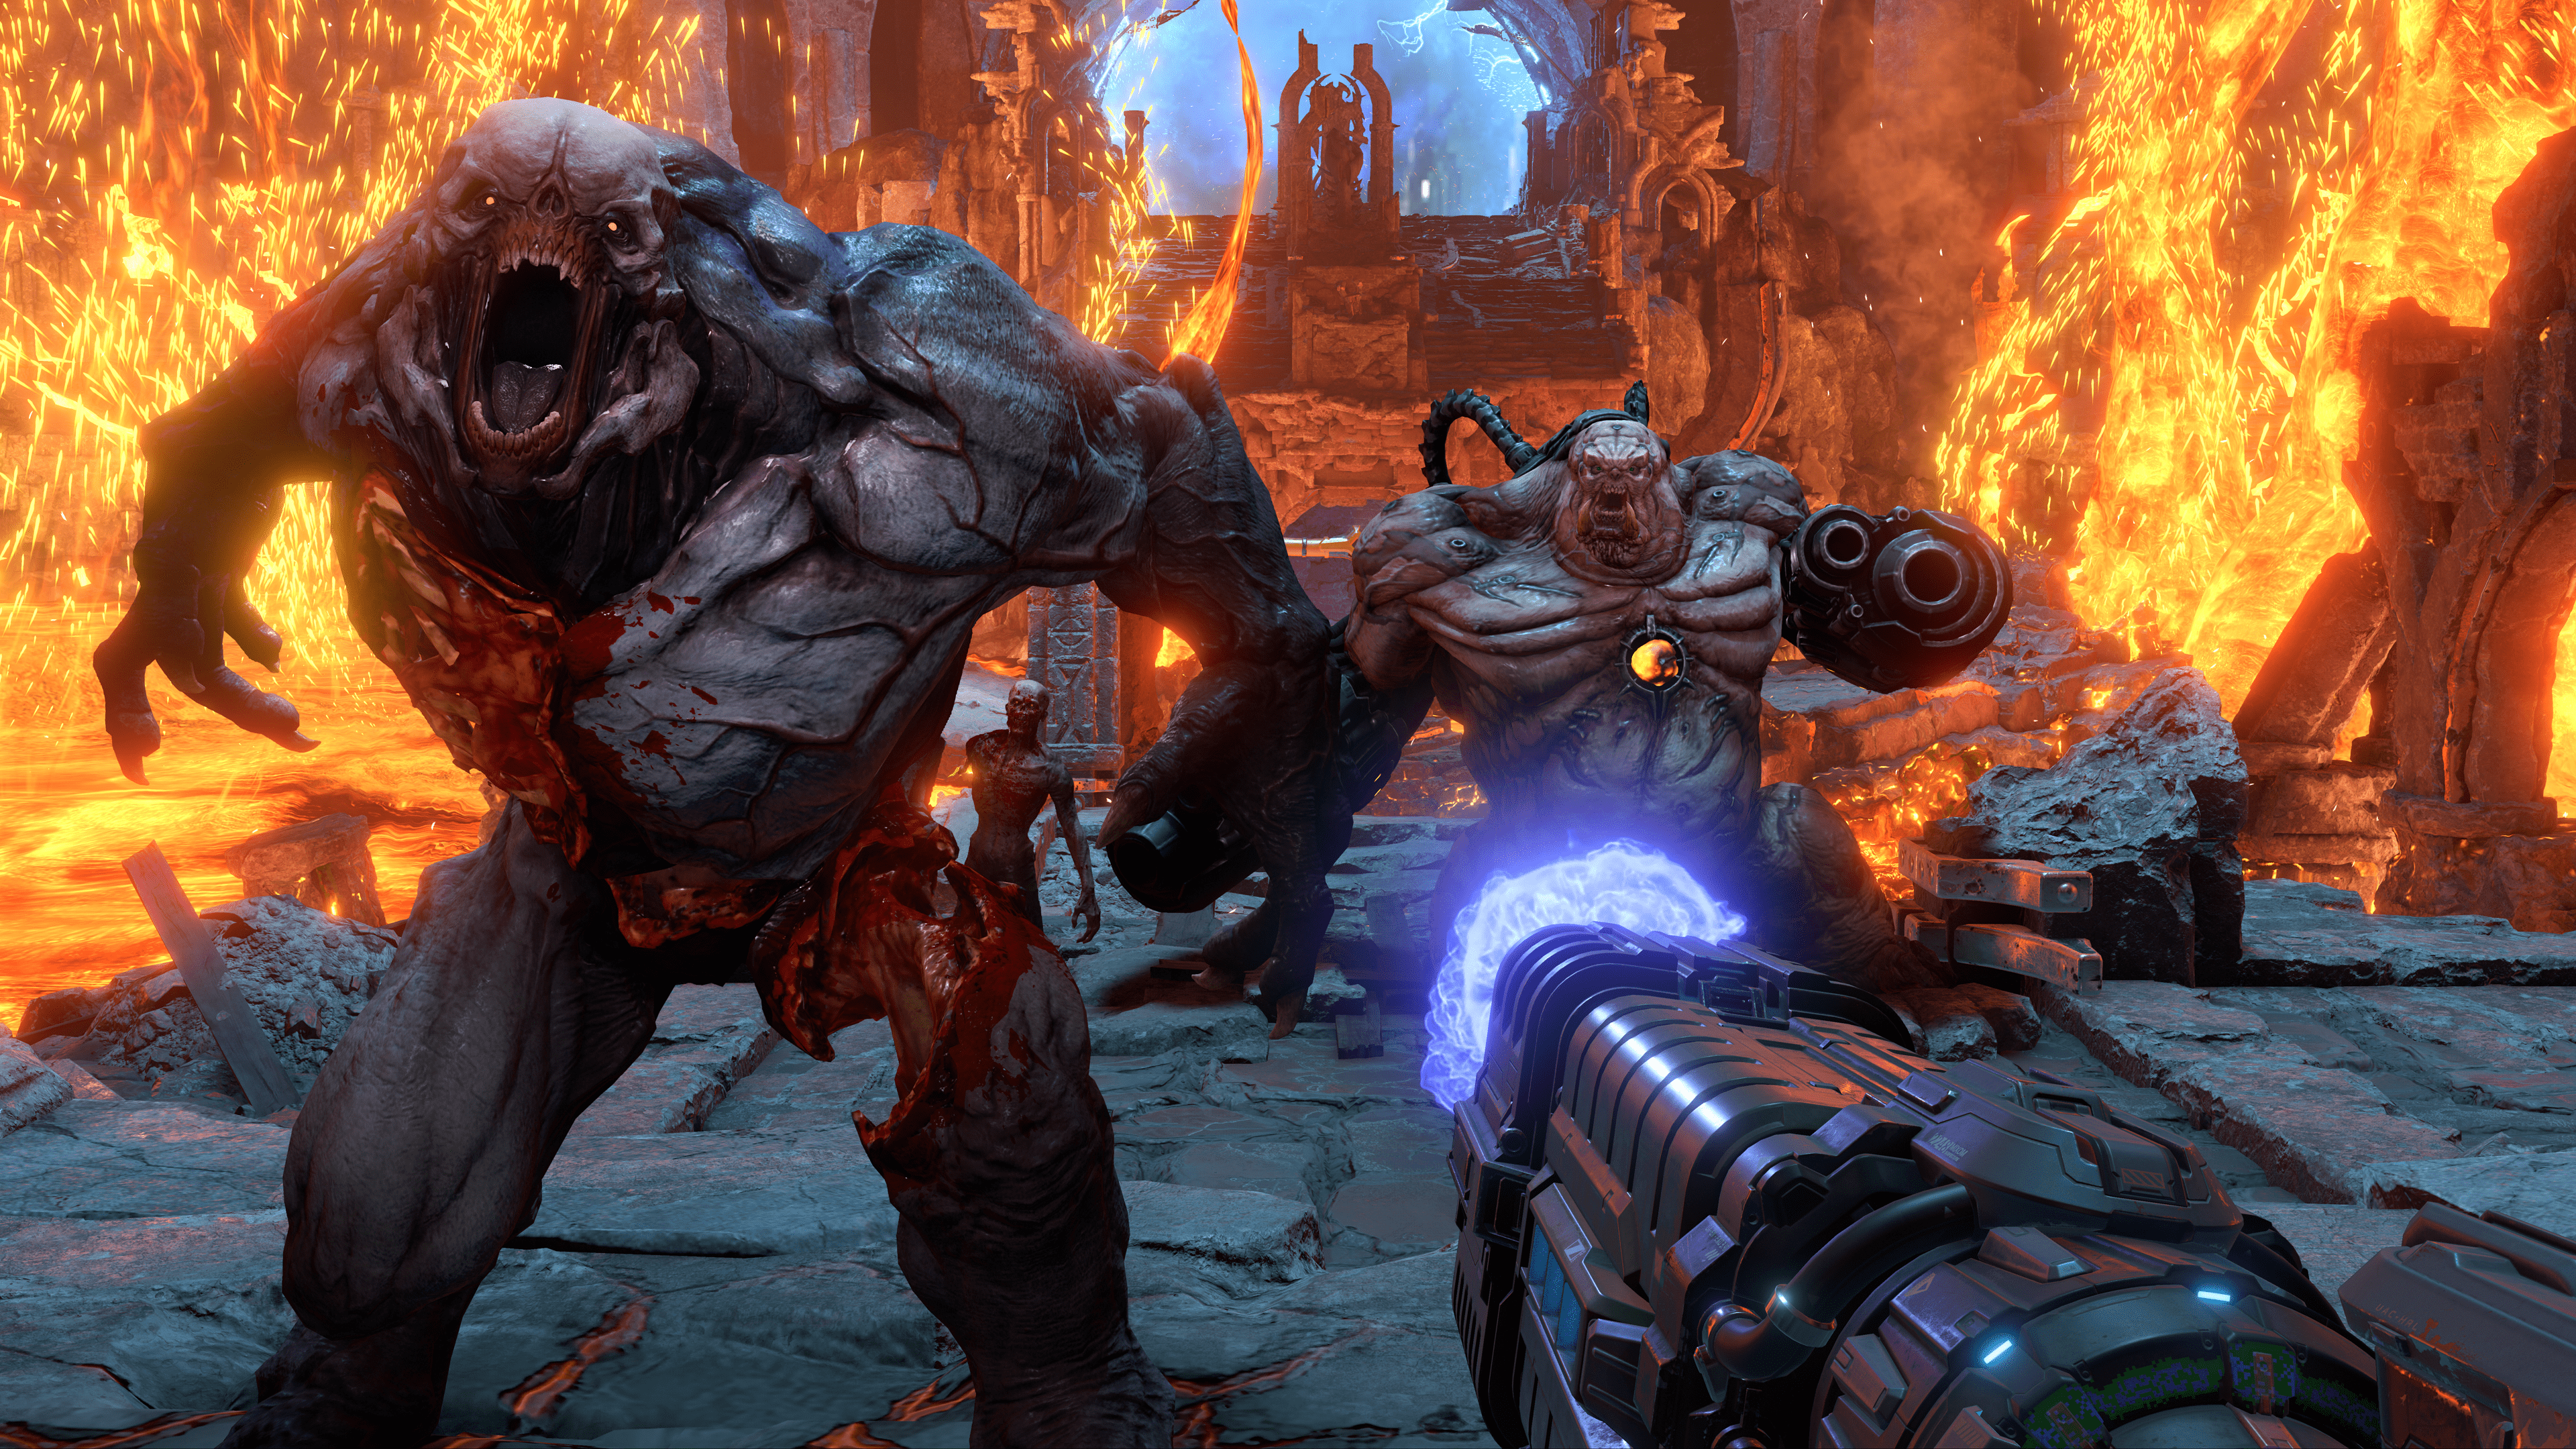 DOOM Eternal Somehow Seems to be an Improvement in Every Single Way from 2016's Entry